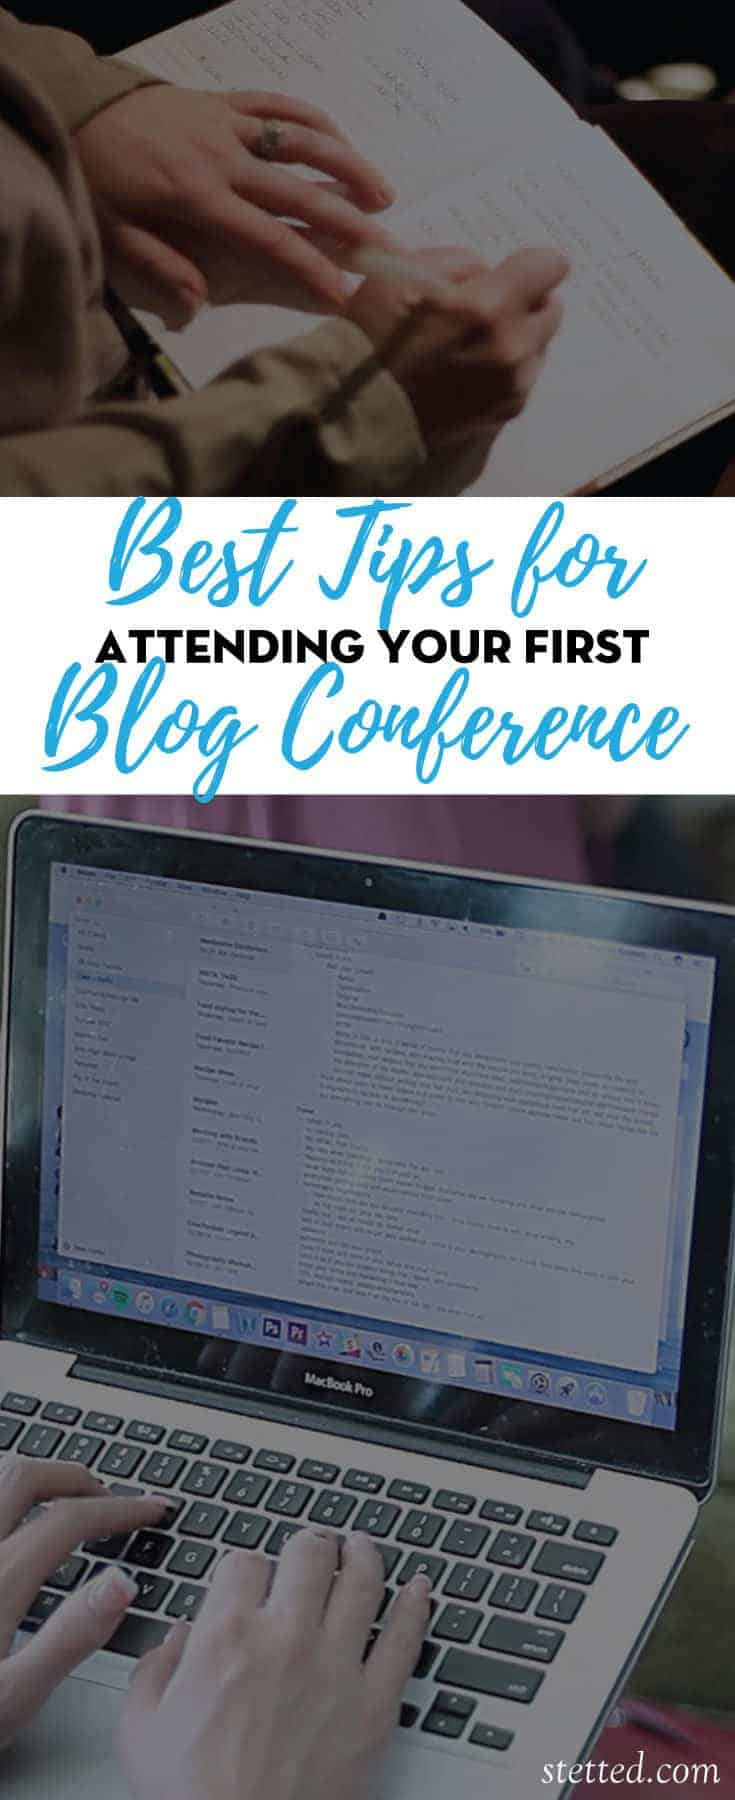 Best Tips for Attending Your First Blog Conference